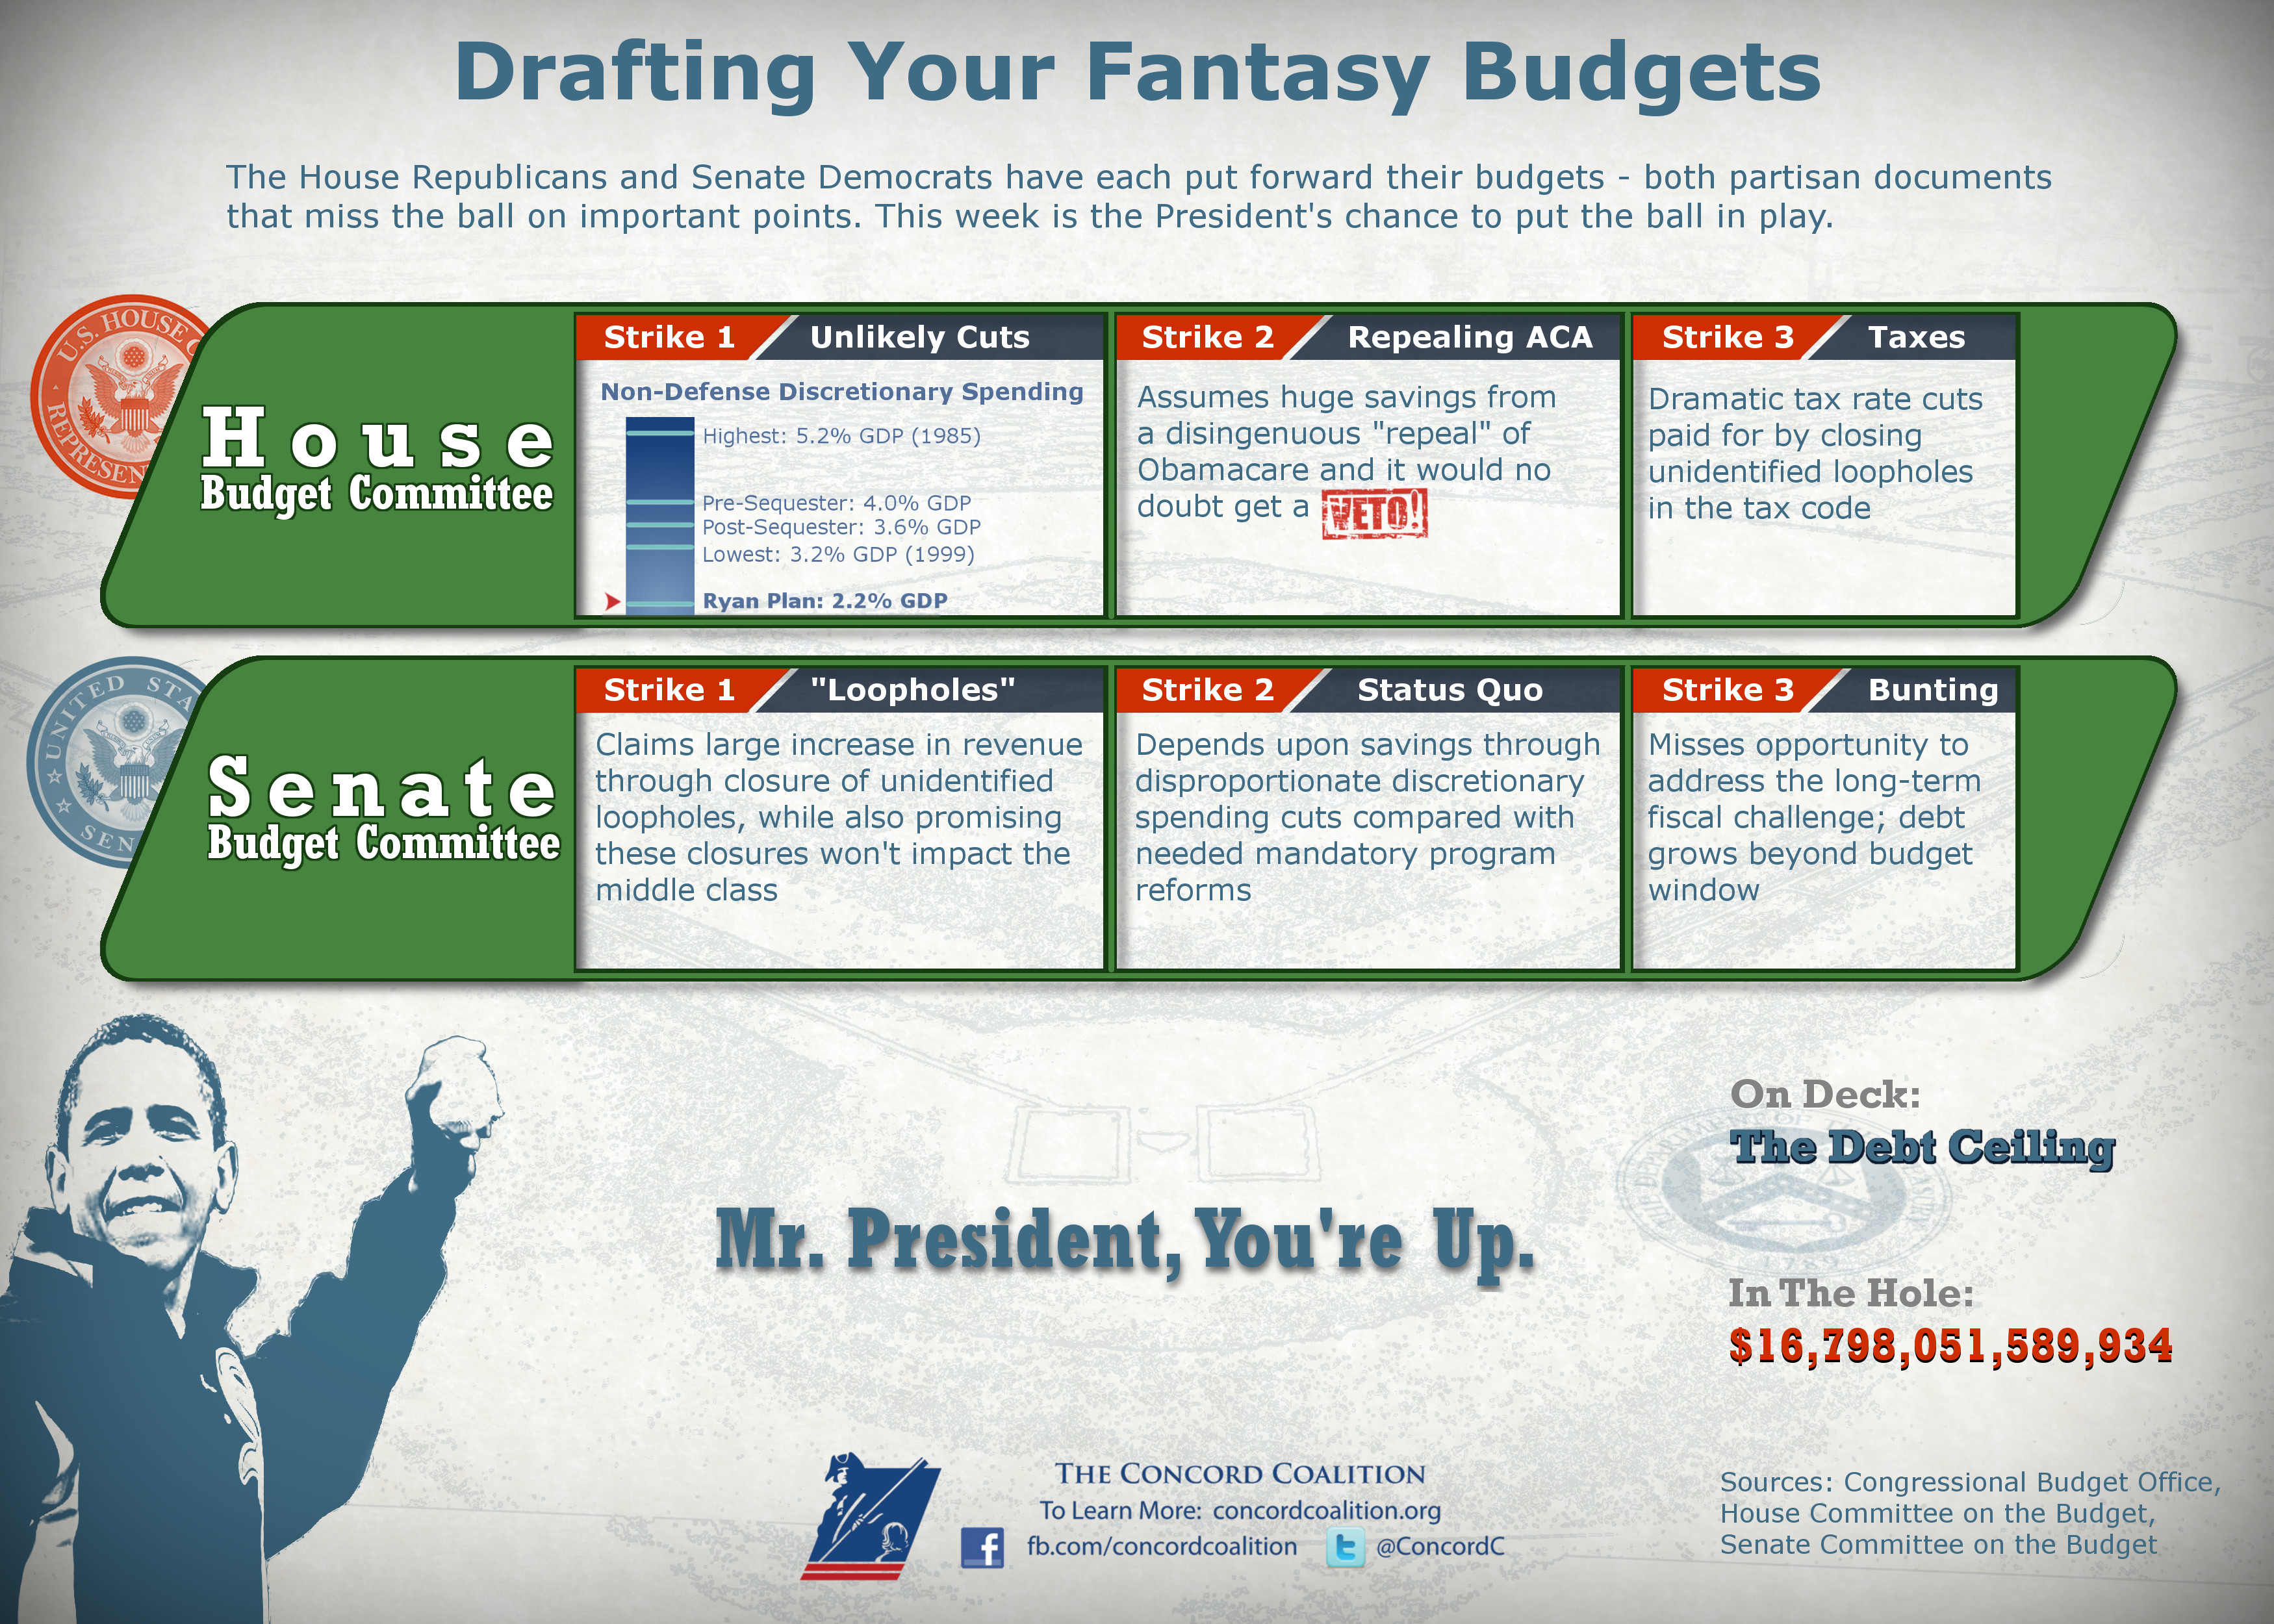 Fantasy Budgets: Comparing House and Senate Partisan Budgets